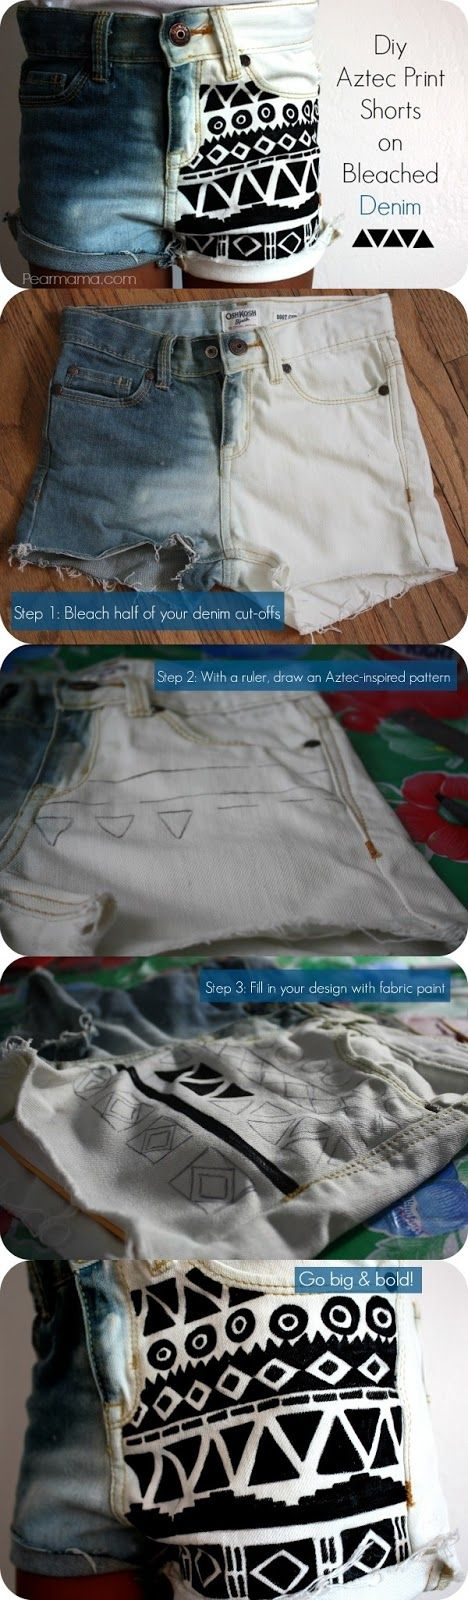 Diy Projects: DIY Aztec Print Shorts Bleached Denim